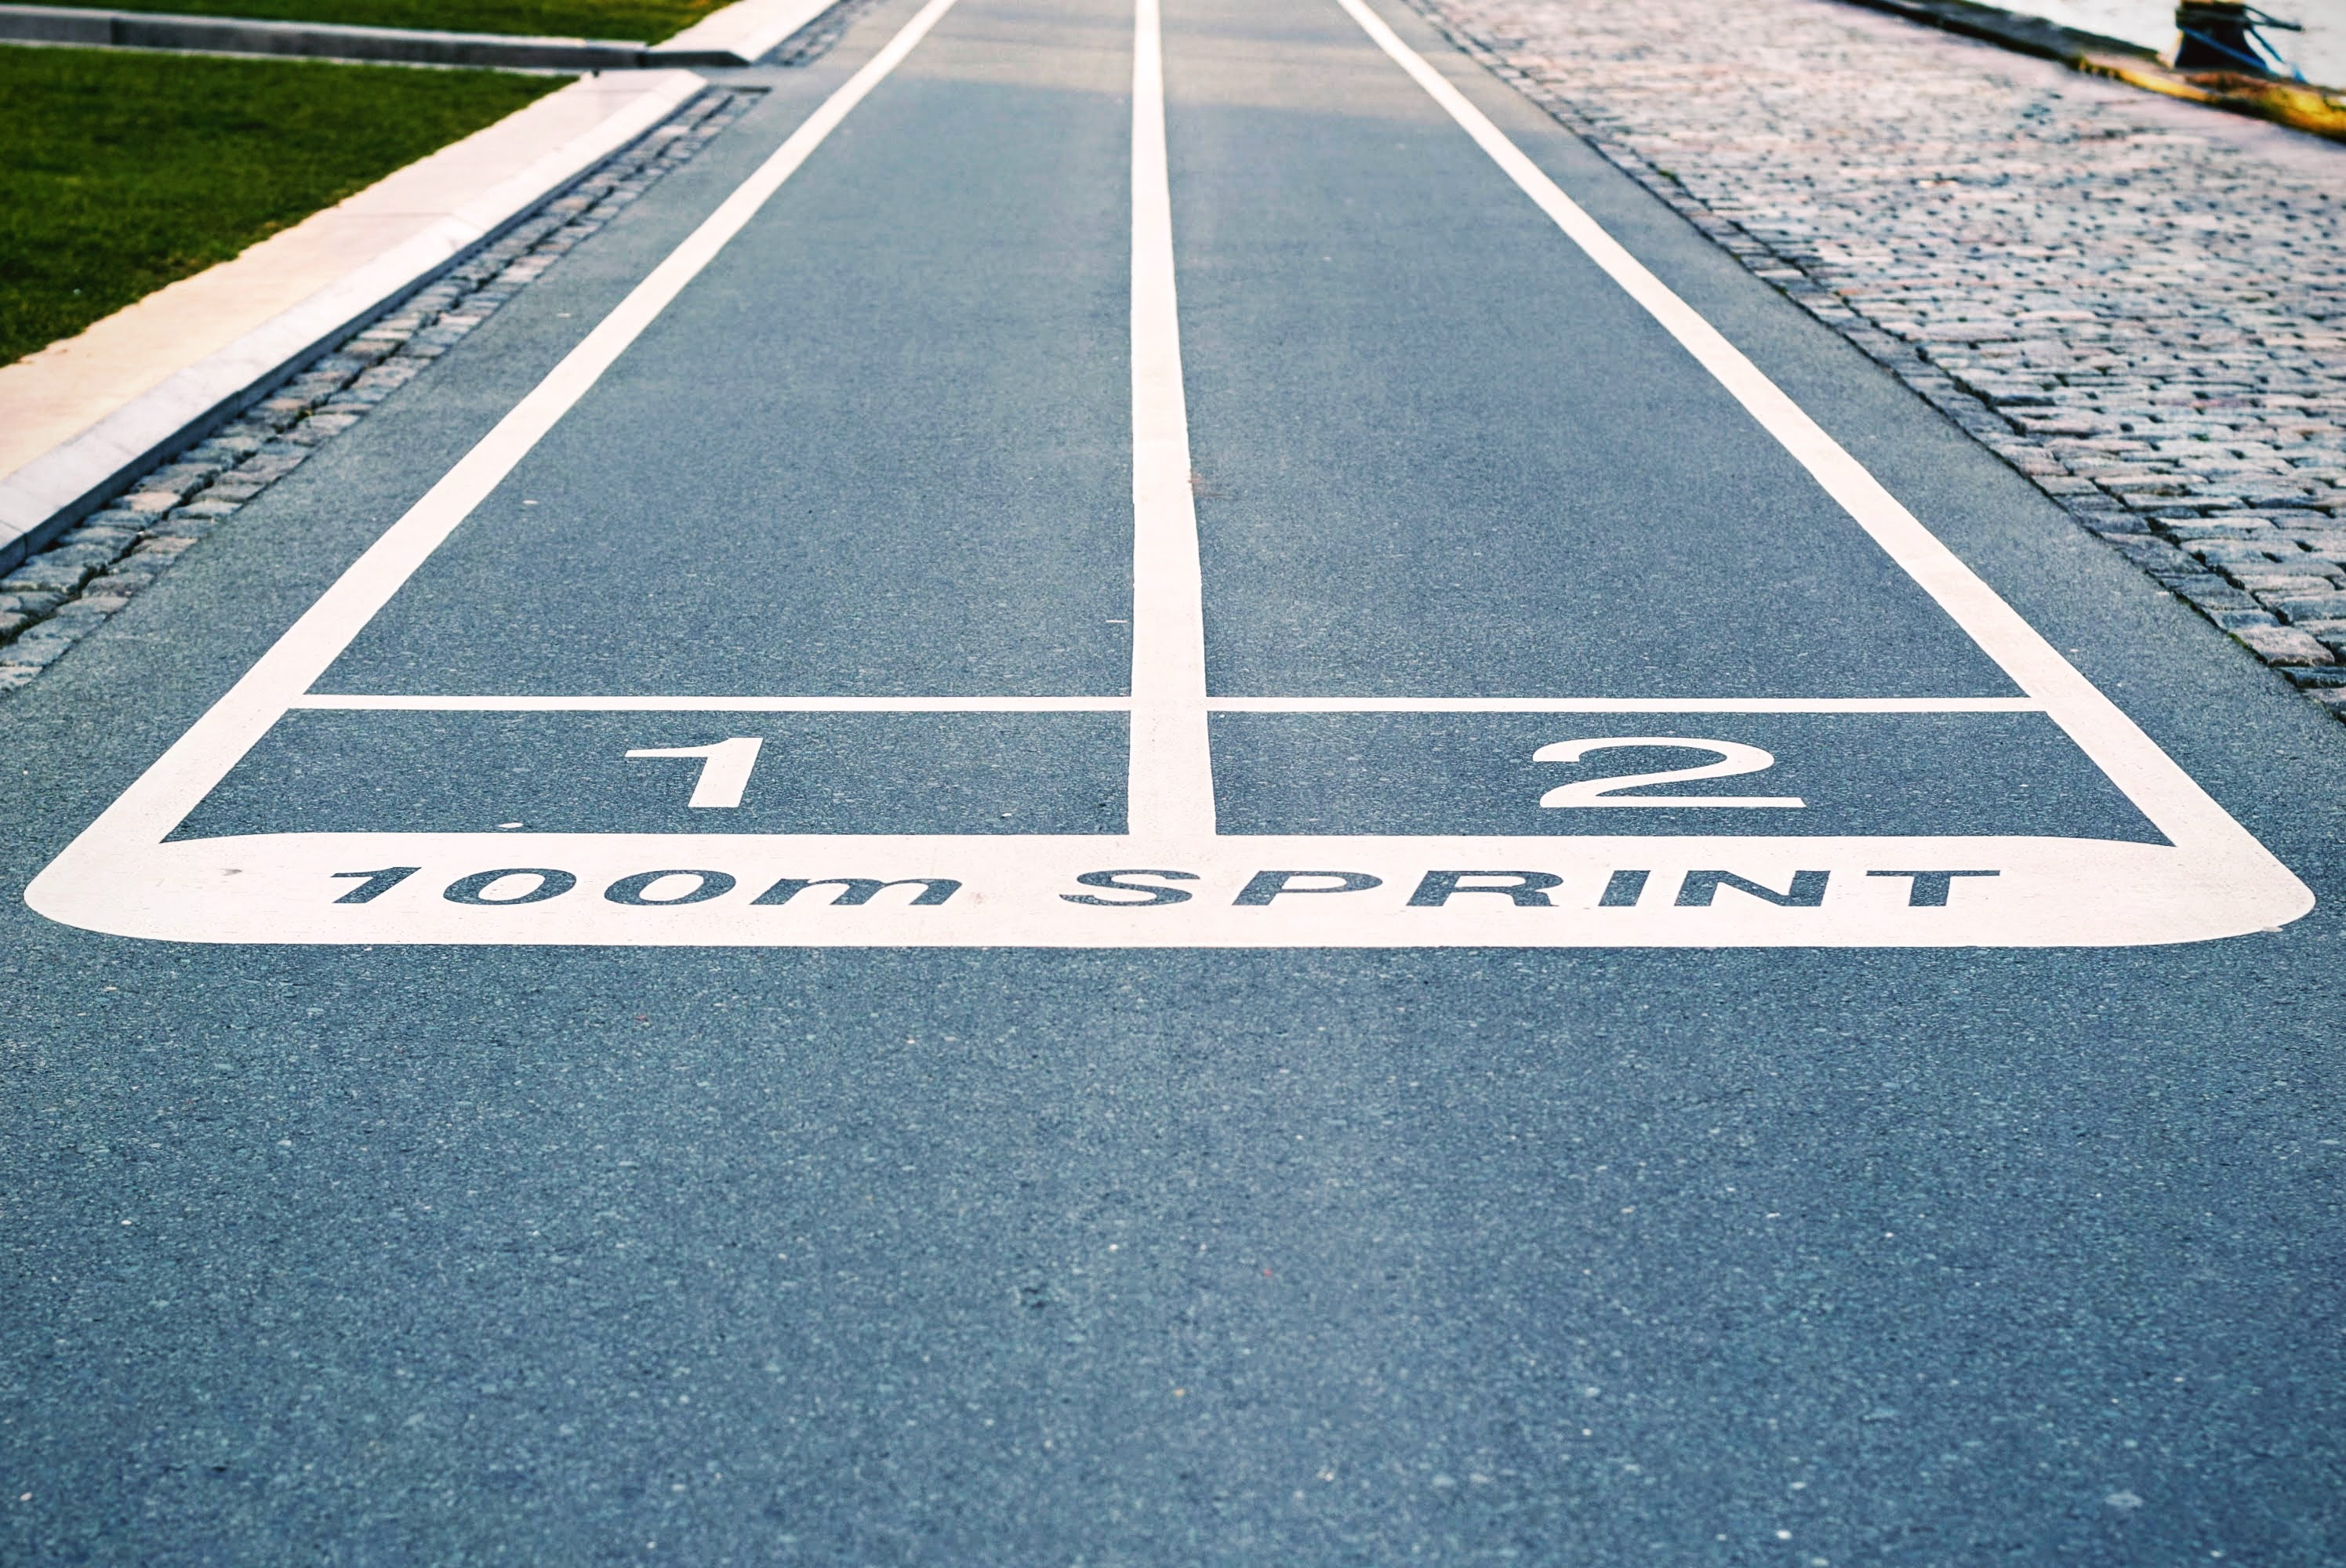 field-events-finish-line-goal-60230